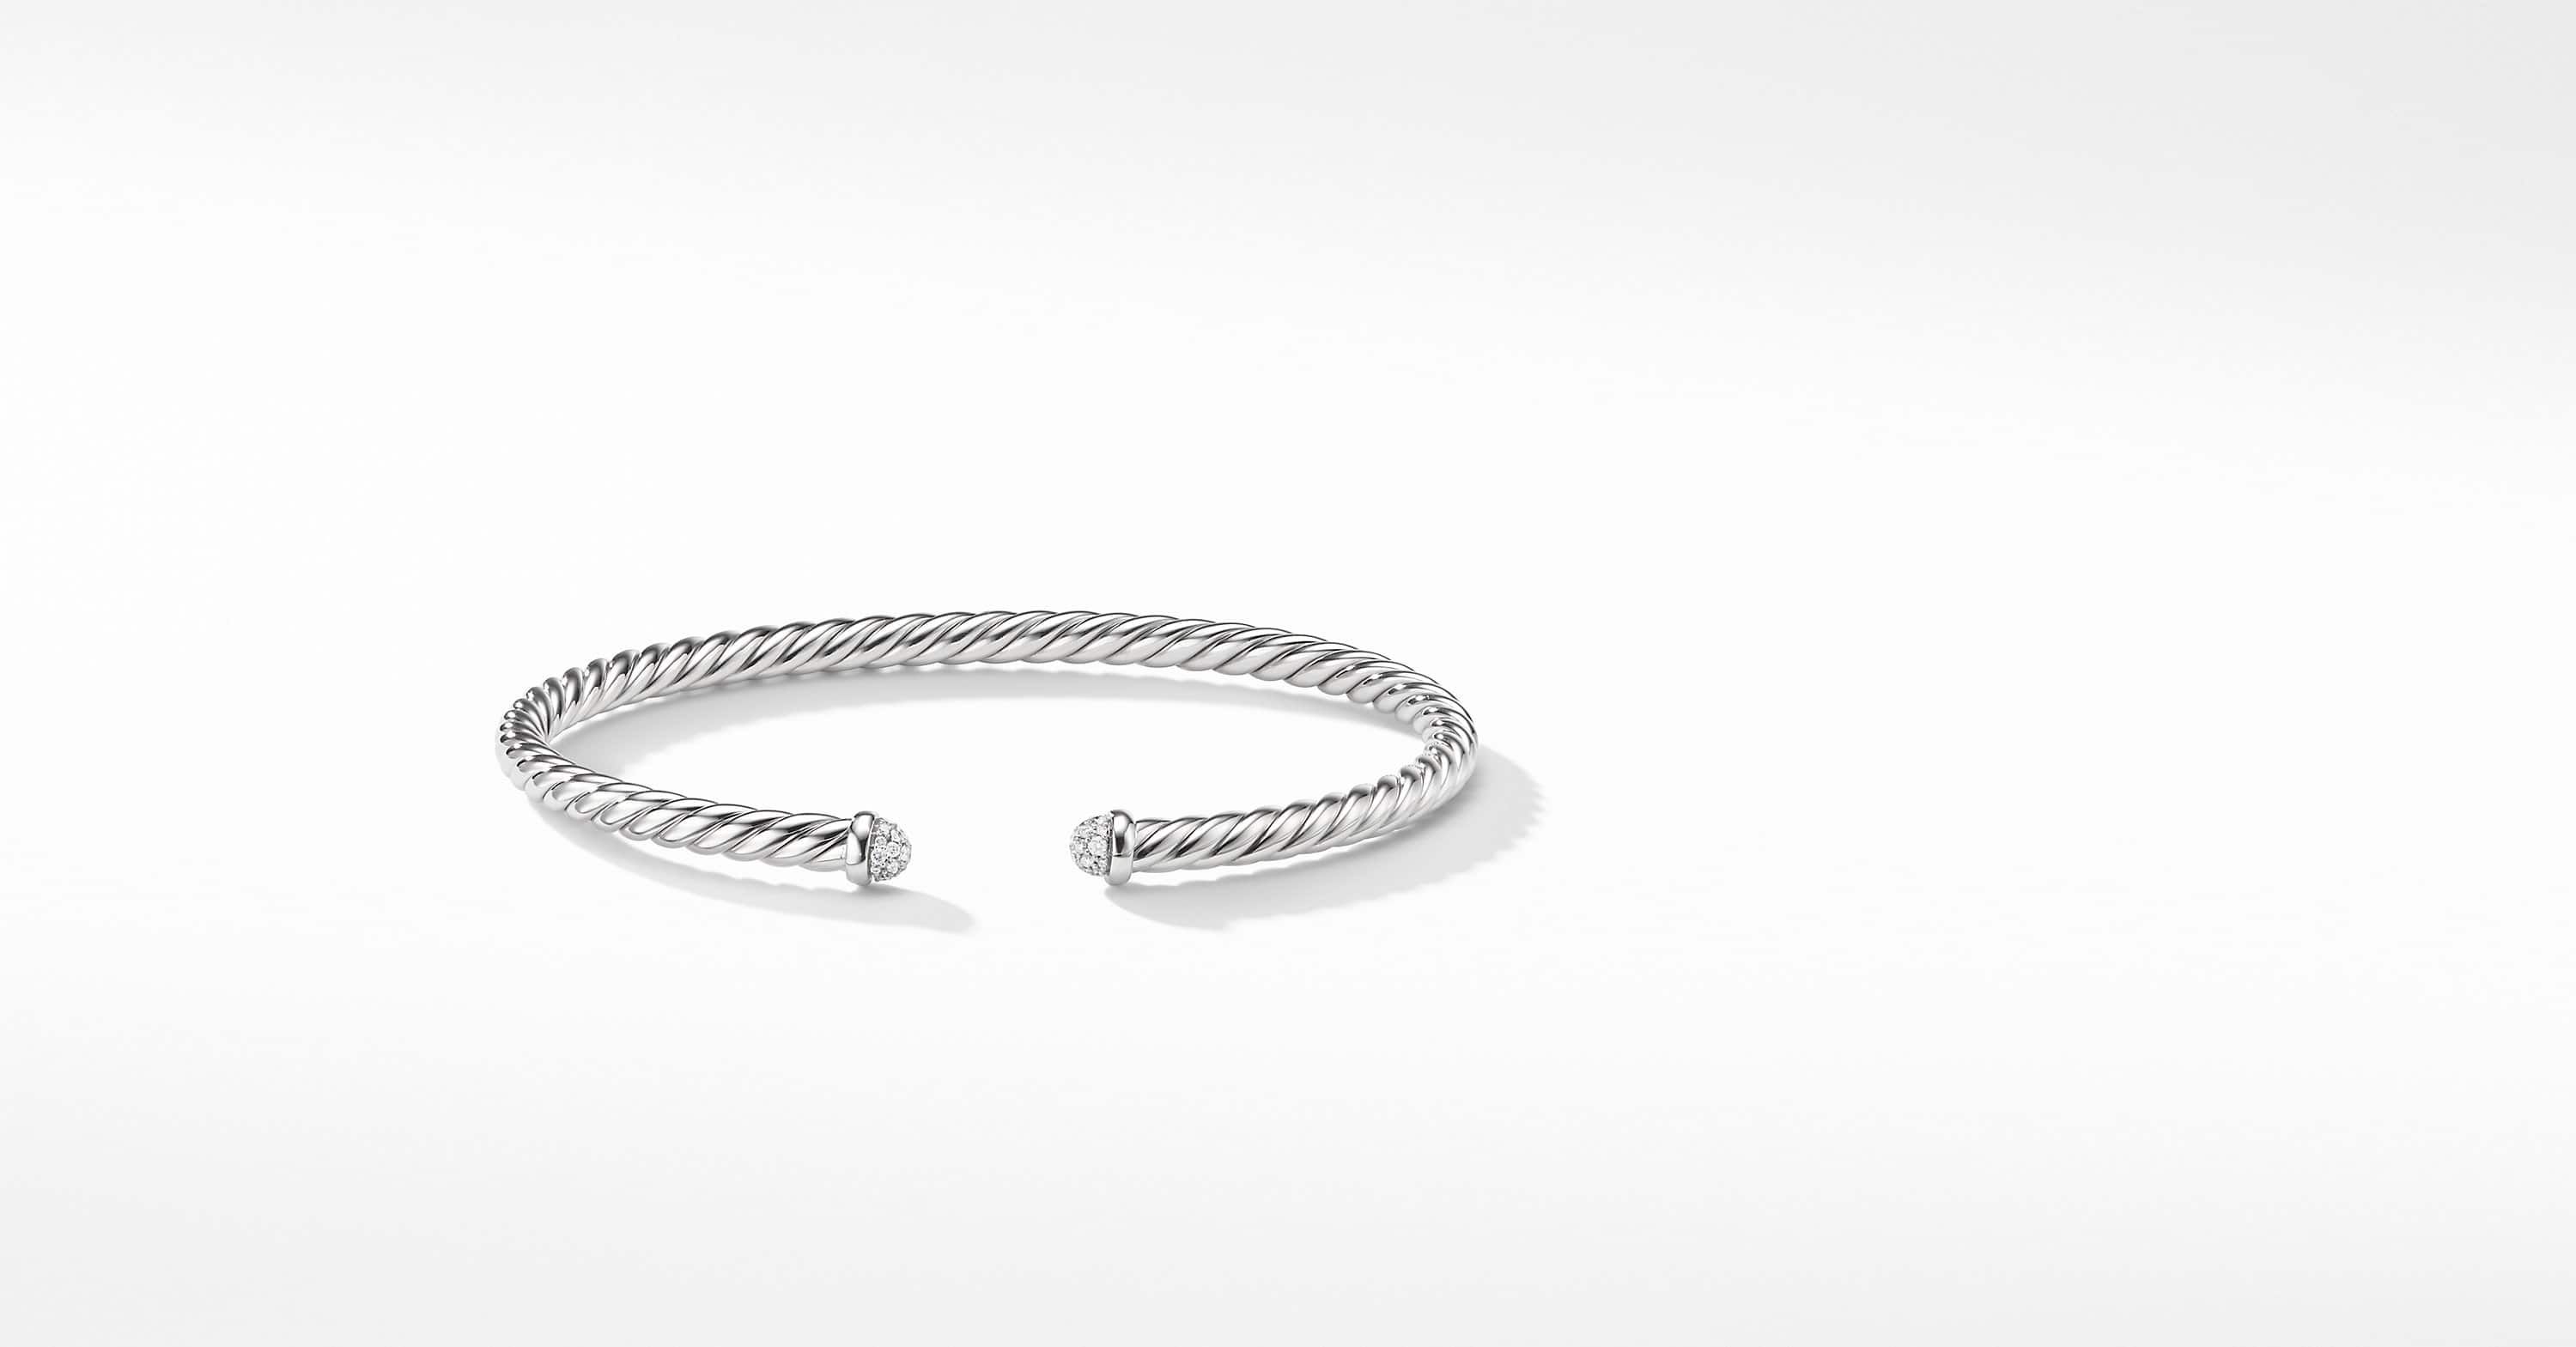 Bracelet « Cable » Spira en or blanc 18 carats et diamants, 4 mm